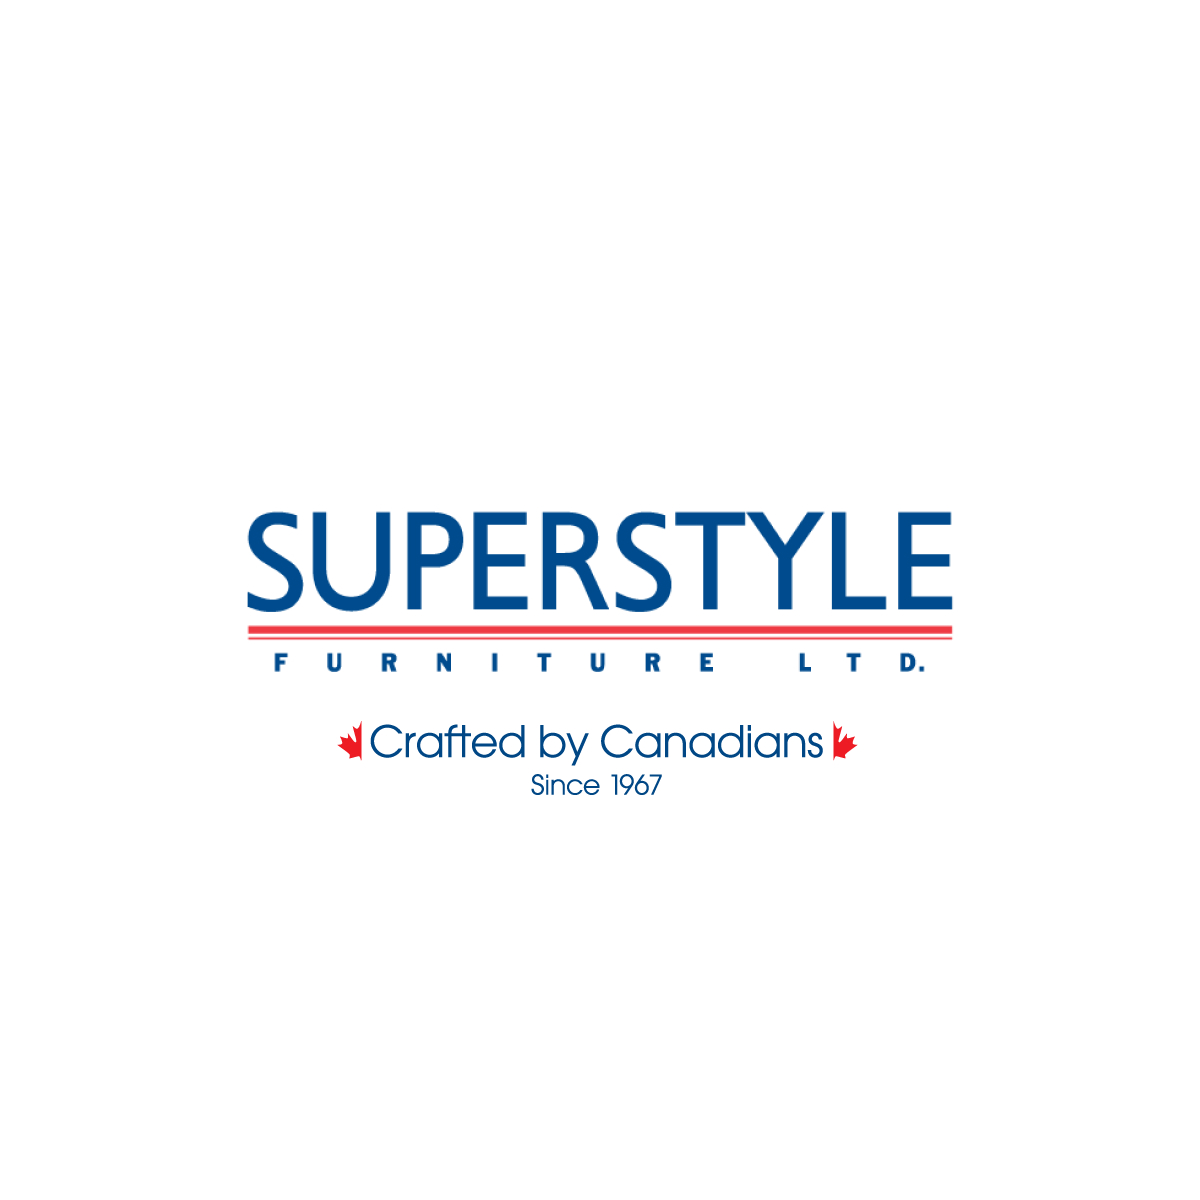 superstyle